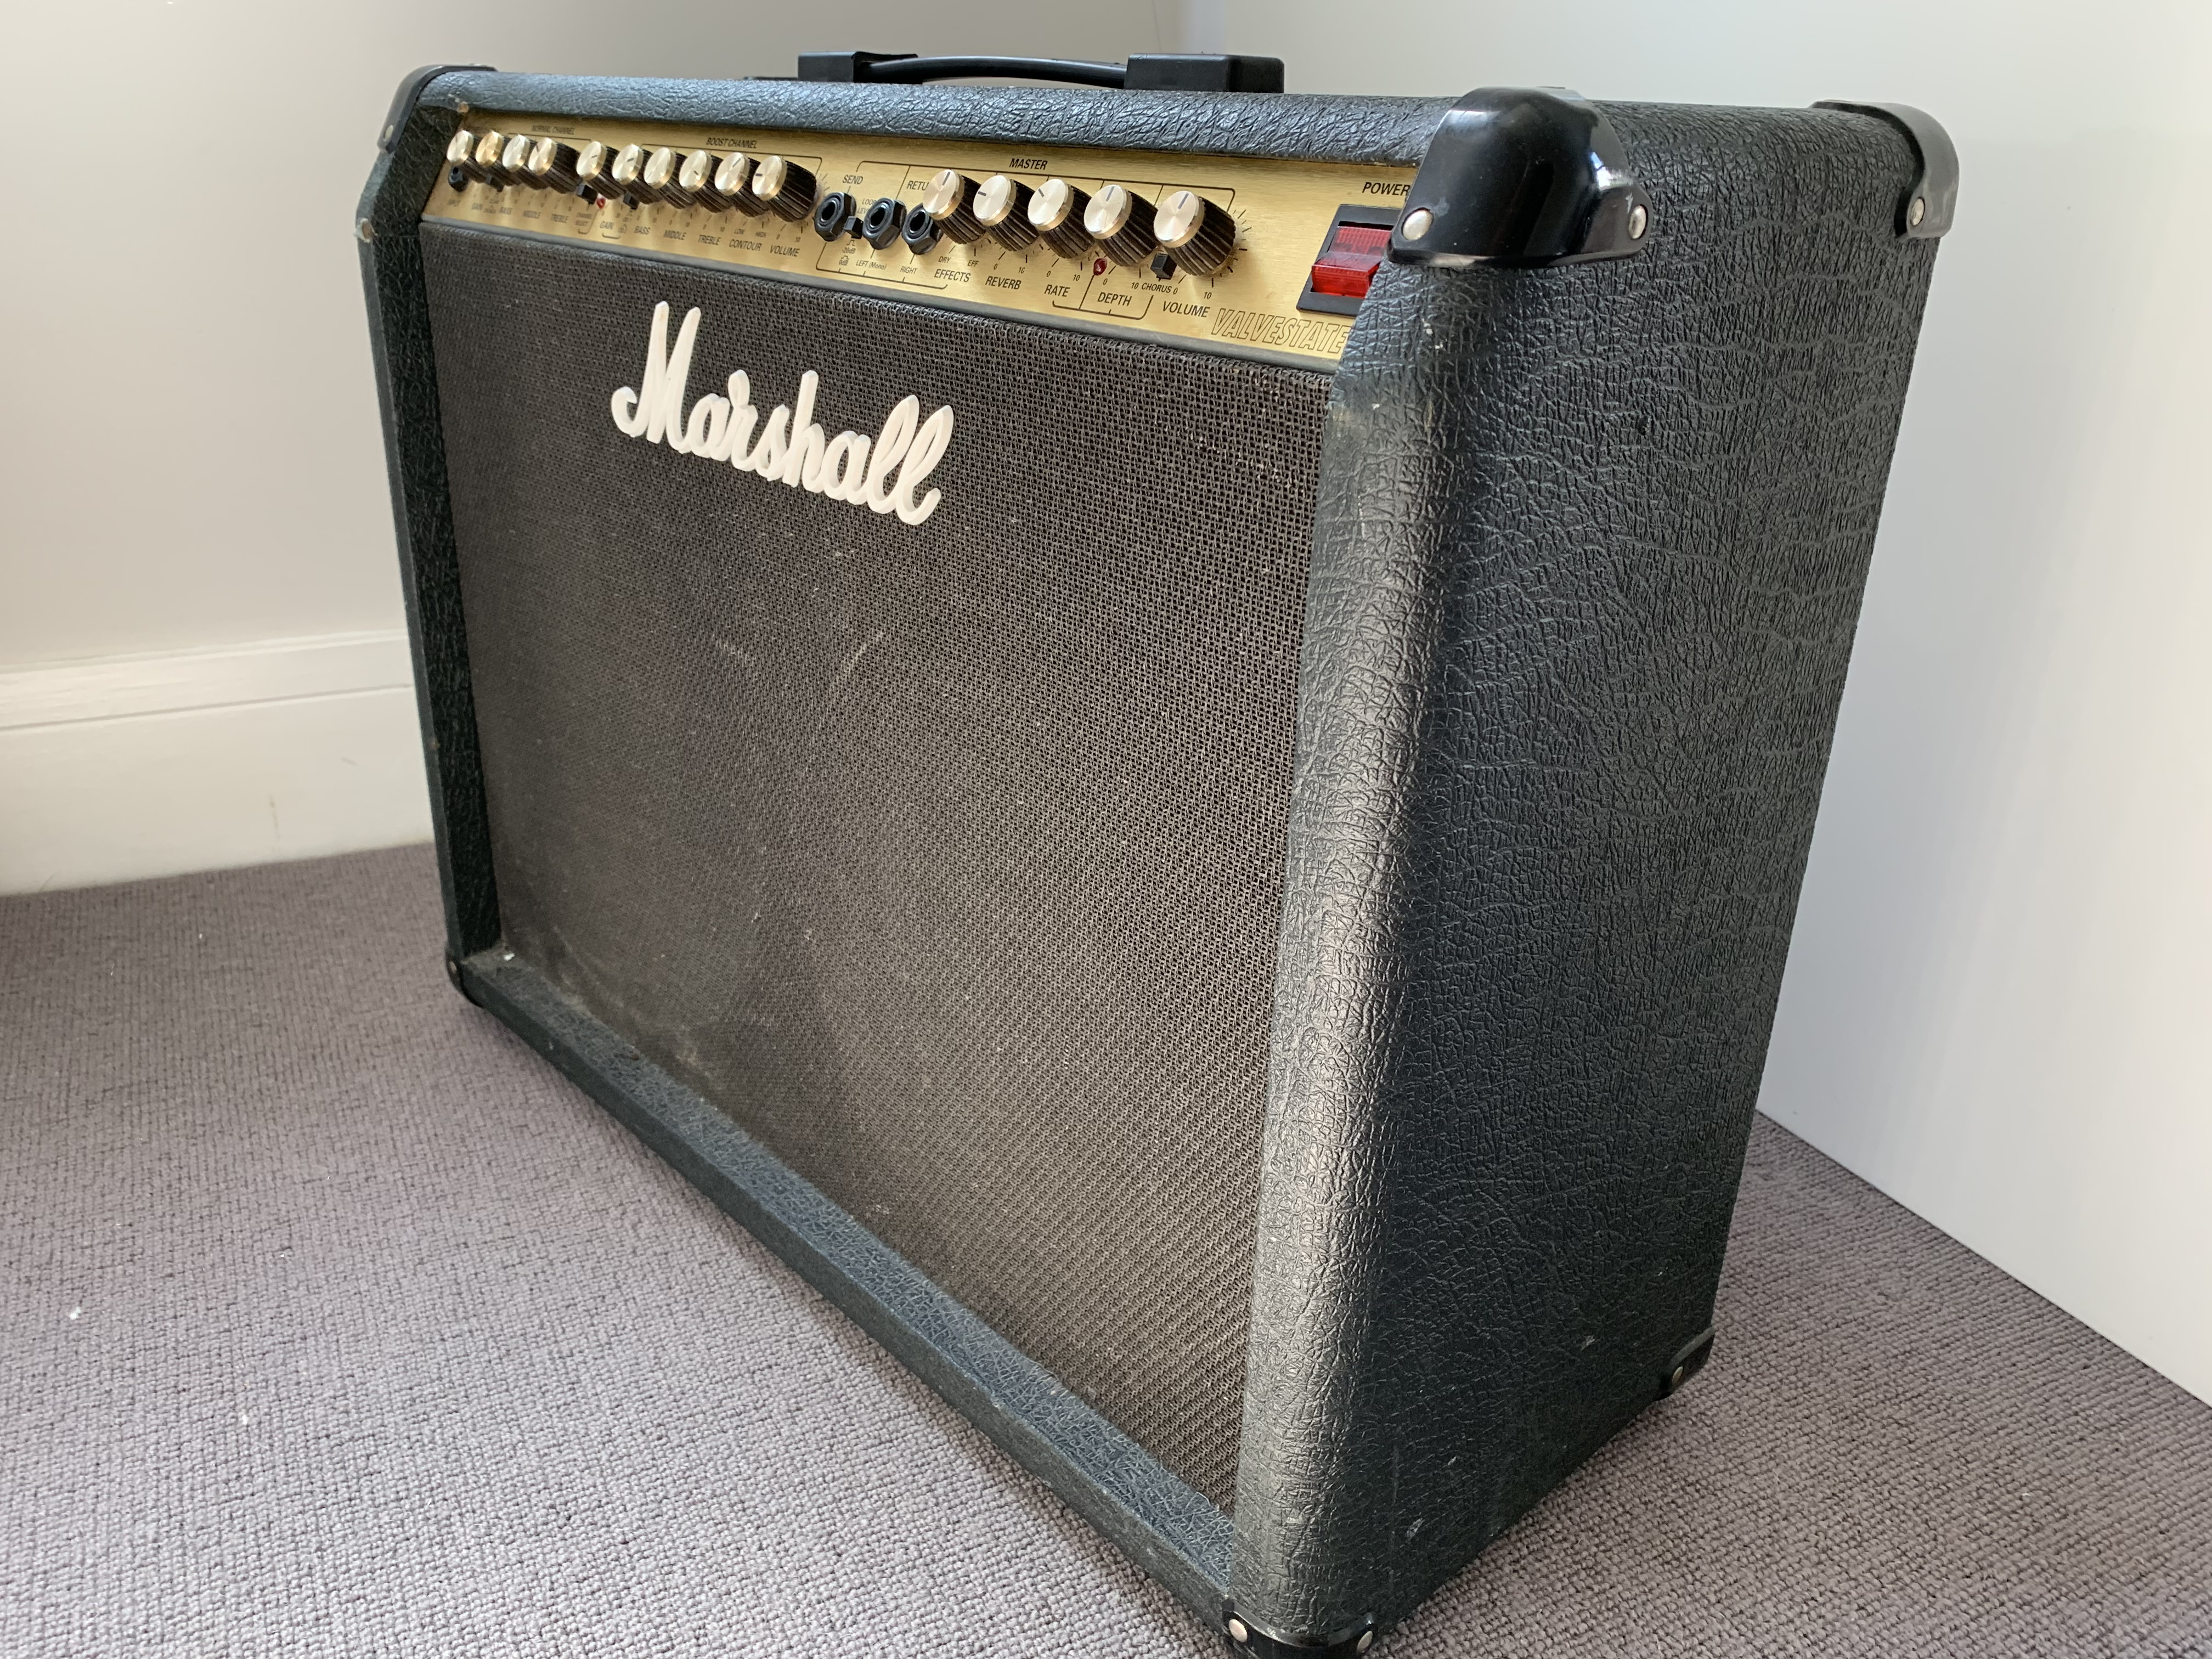 for sale marshall guitar amplifier for sale used but in good condition wanted offered. Black Bedroom Furniture Sets. Home Design Ideas